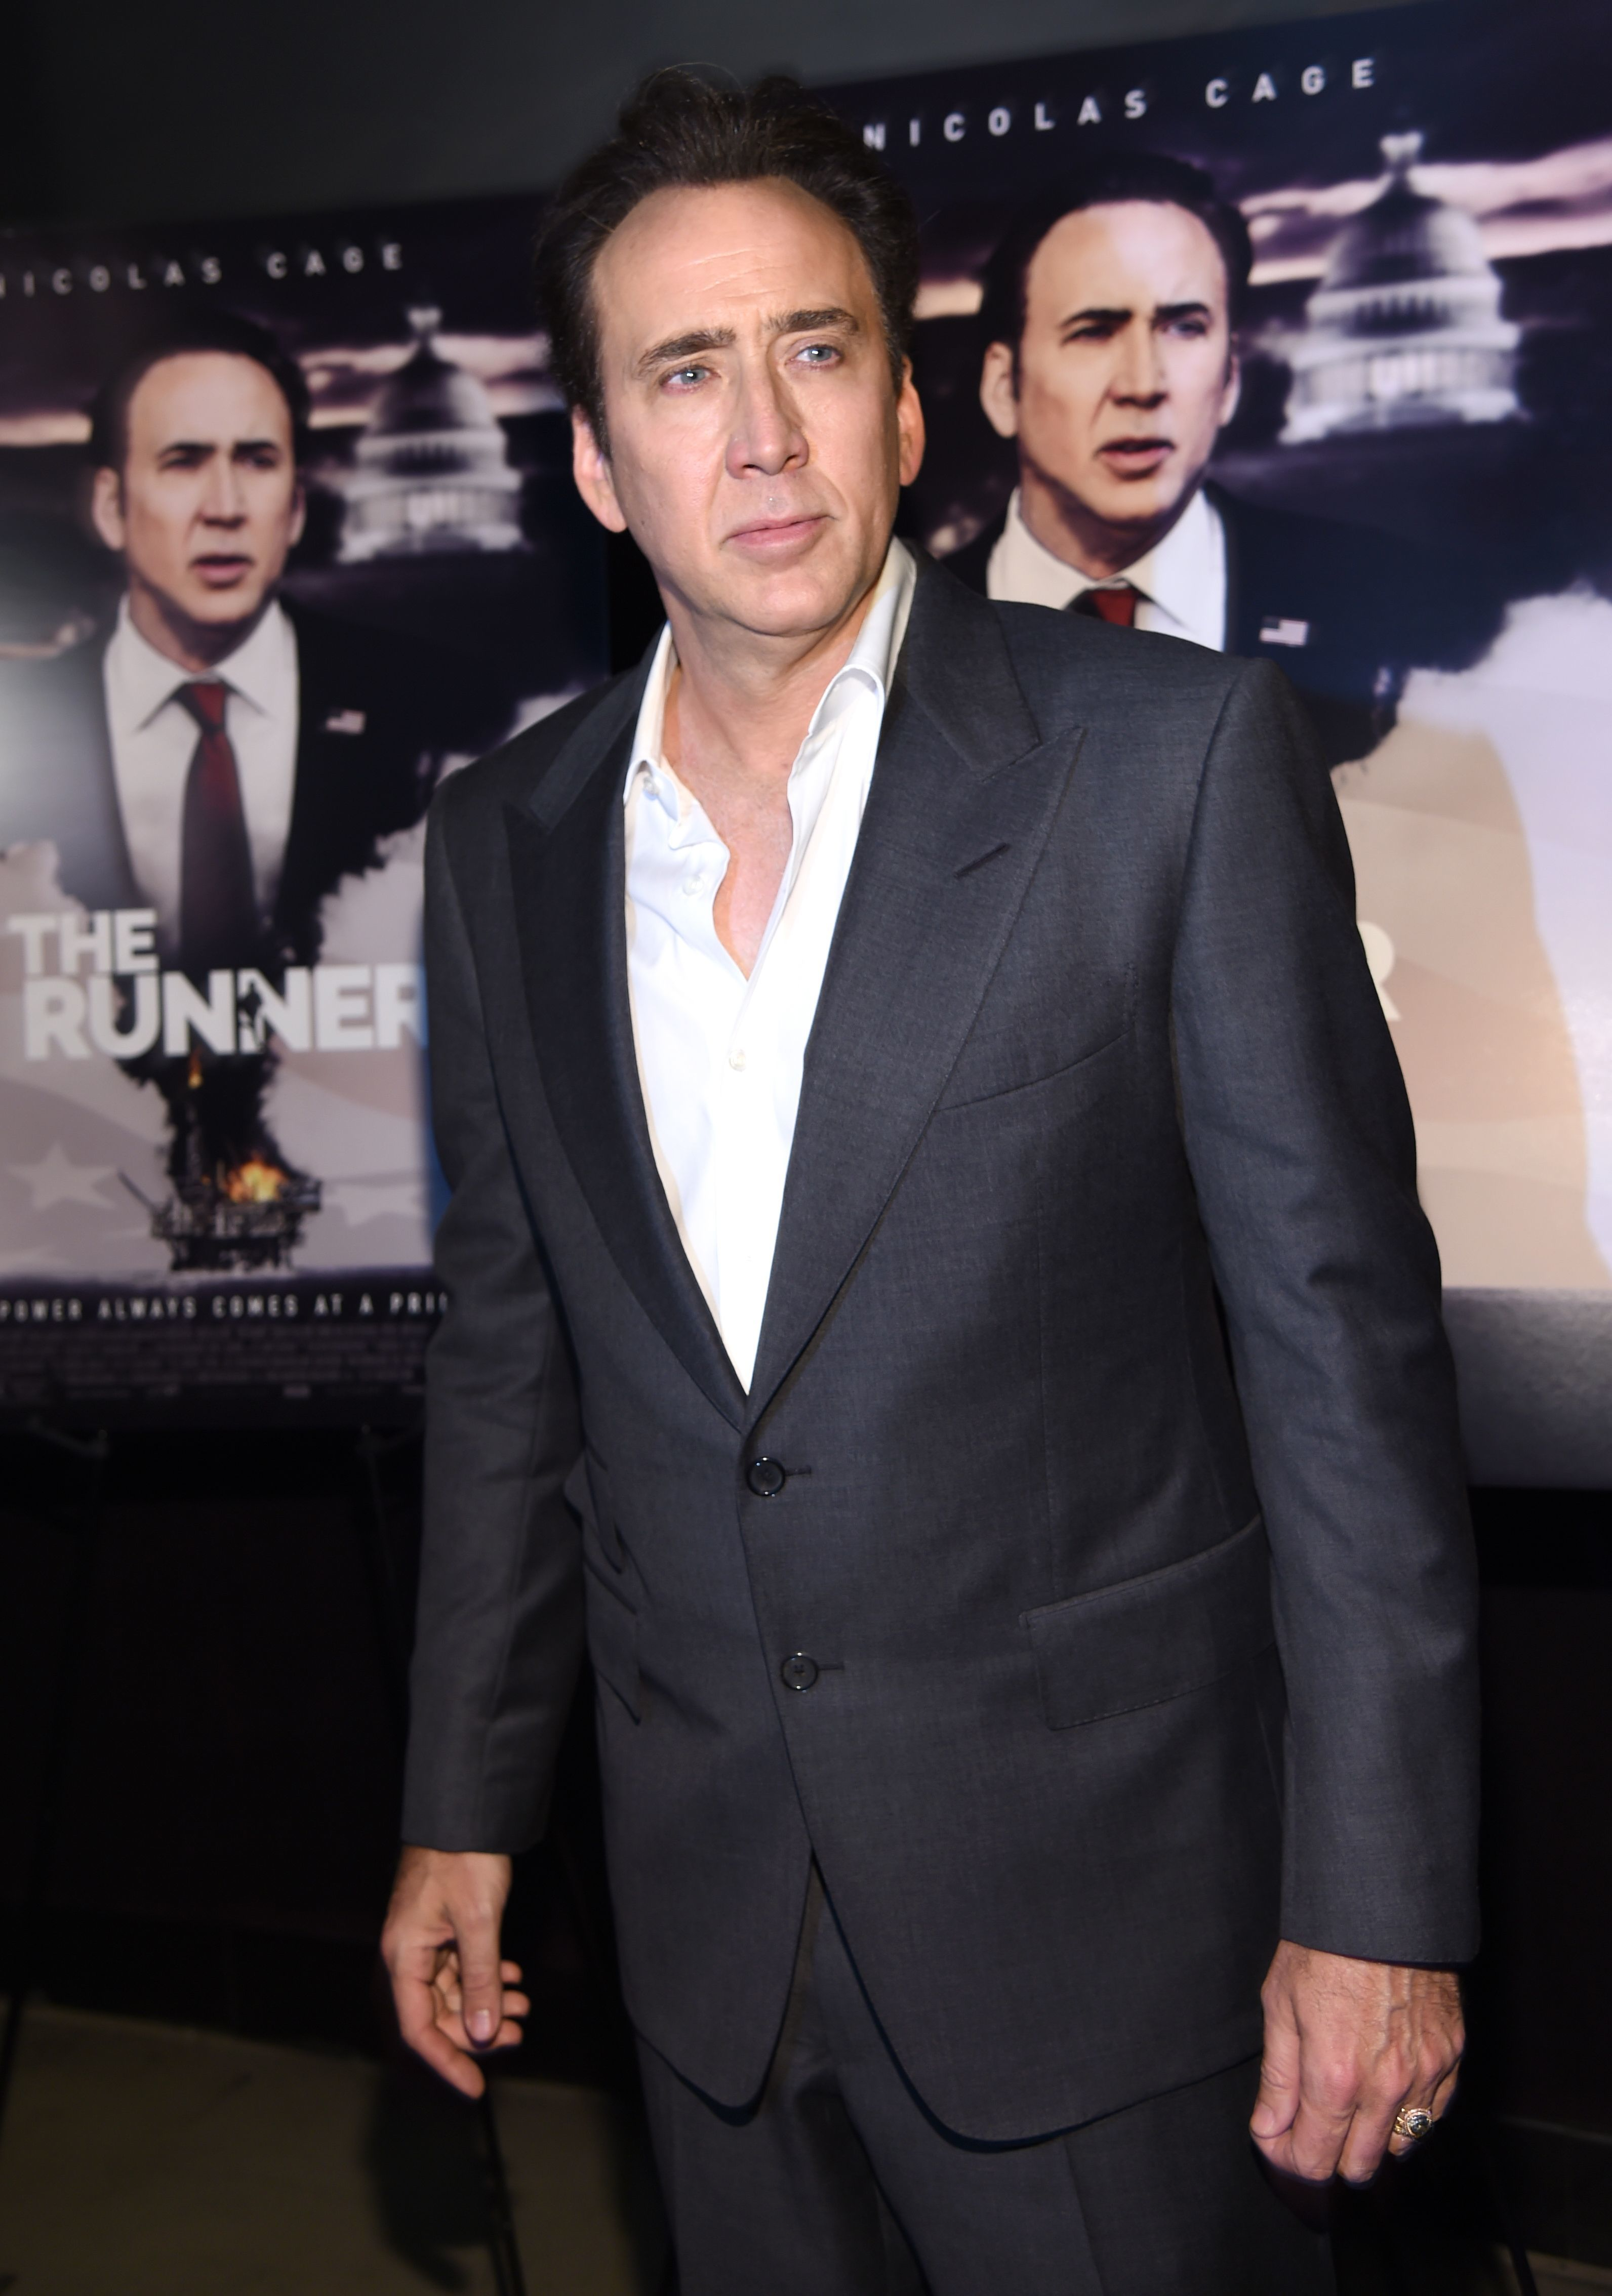 Nicolas Cage suffers 'unforeseen dizziness,' skips SXSW premiere